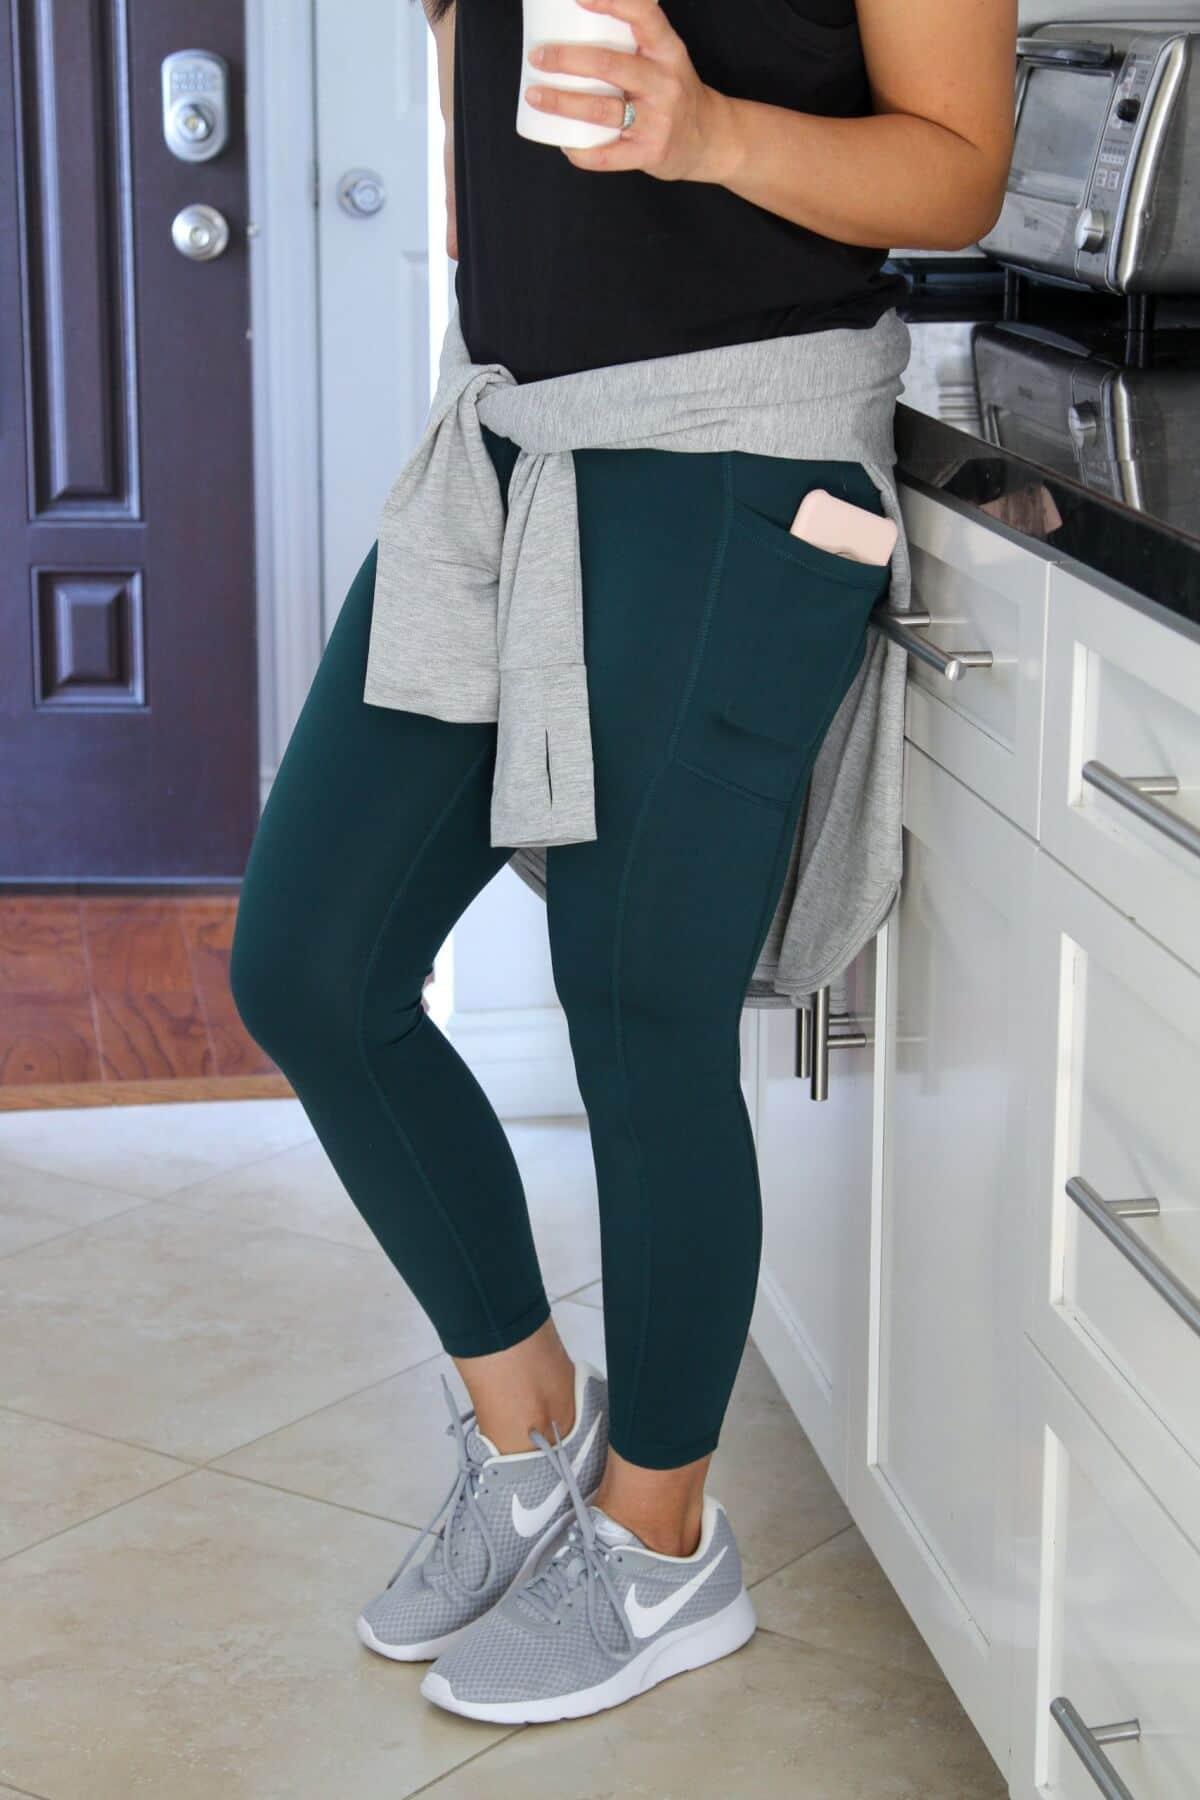 workout outfit with black tank + green leggings + grey sneakers close up